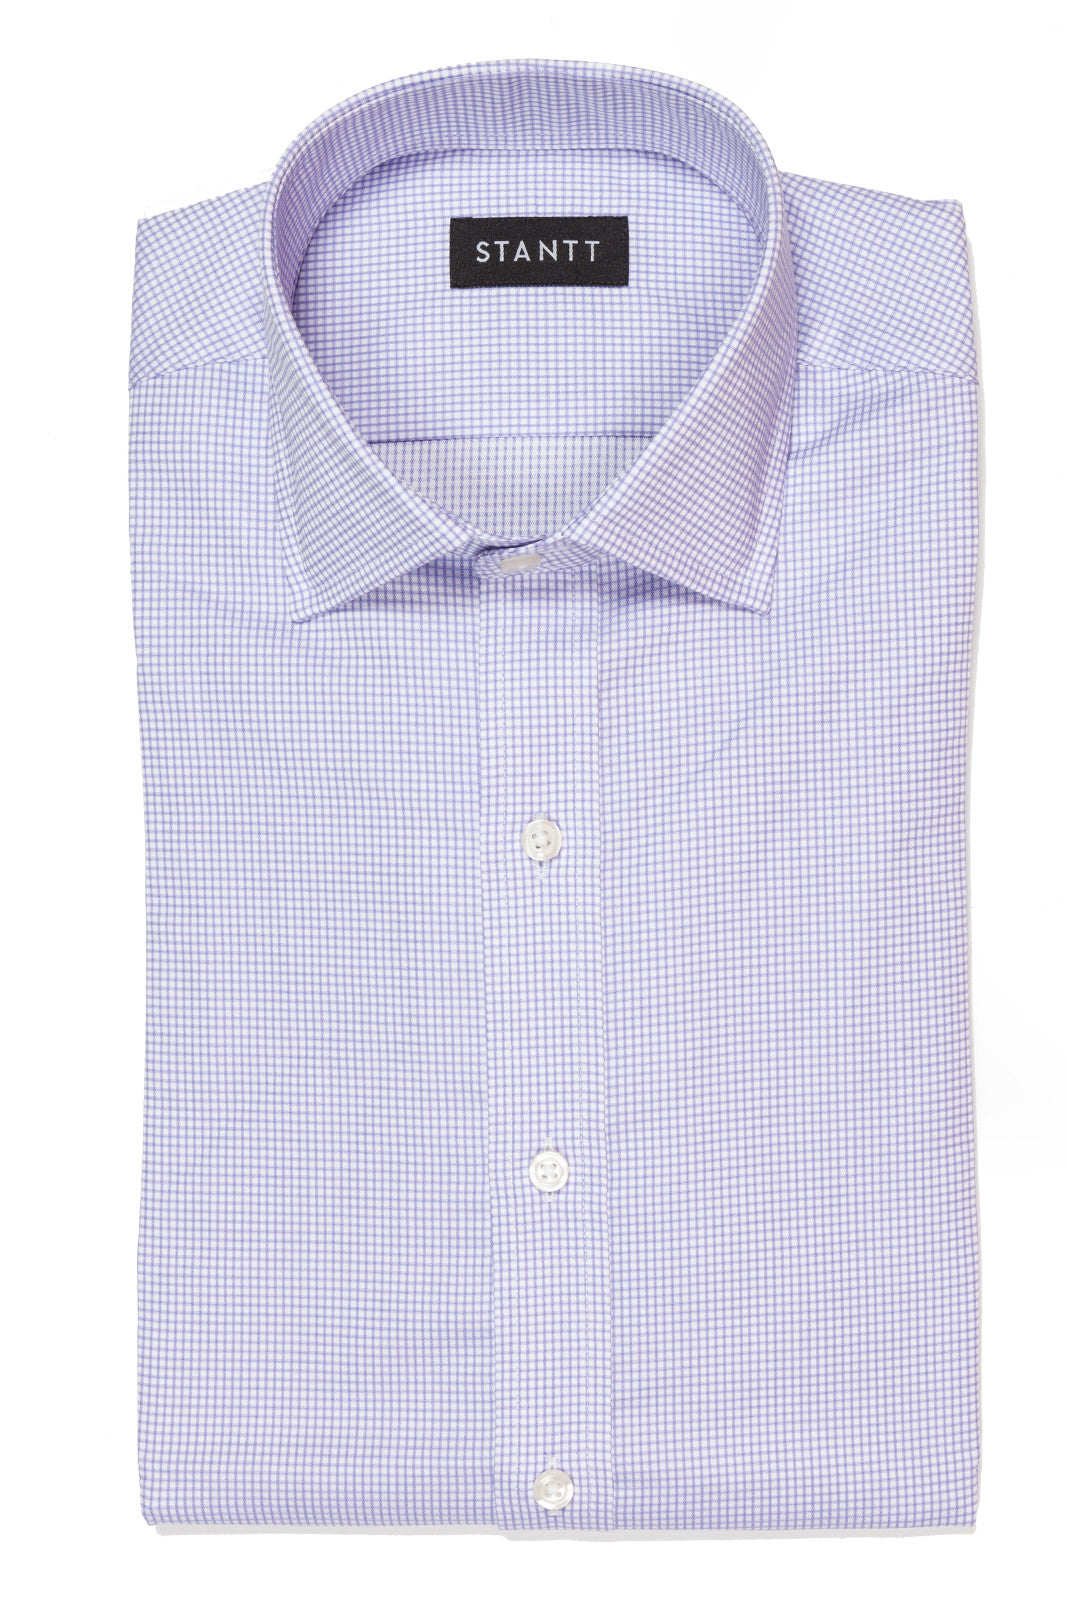 Wrinkle-Resistant Purple Accented Mini-Check: Modified-Spread Collar, Barrel Cuff